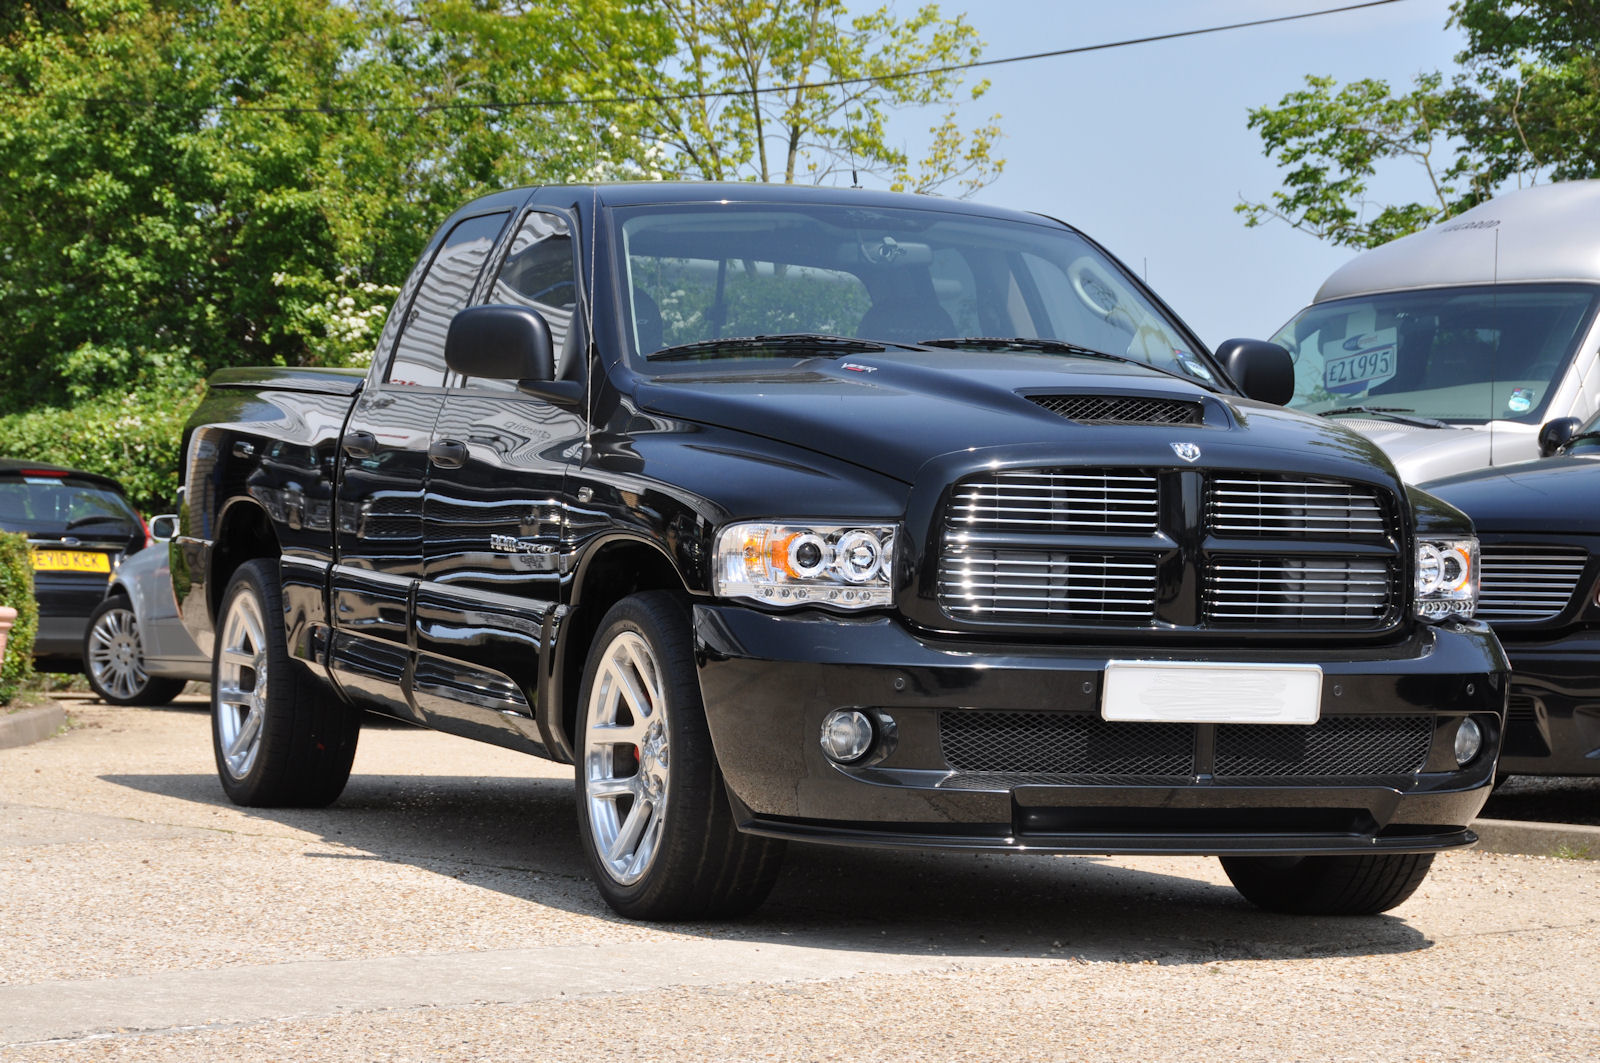 2005 05 dodge ram srt10 quad cab 16 000 miles only. Black Bedroom Furniture Sets. Home Design Ideas